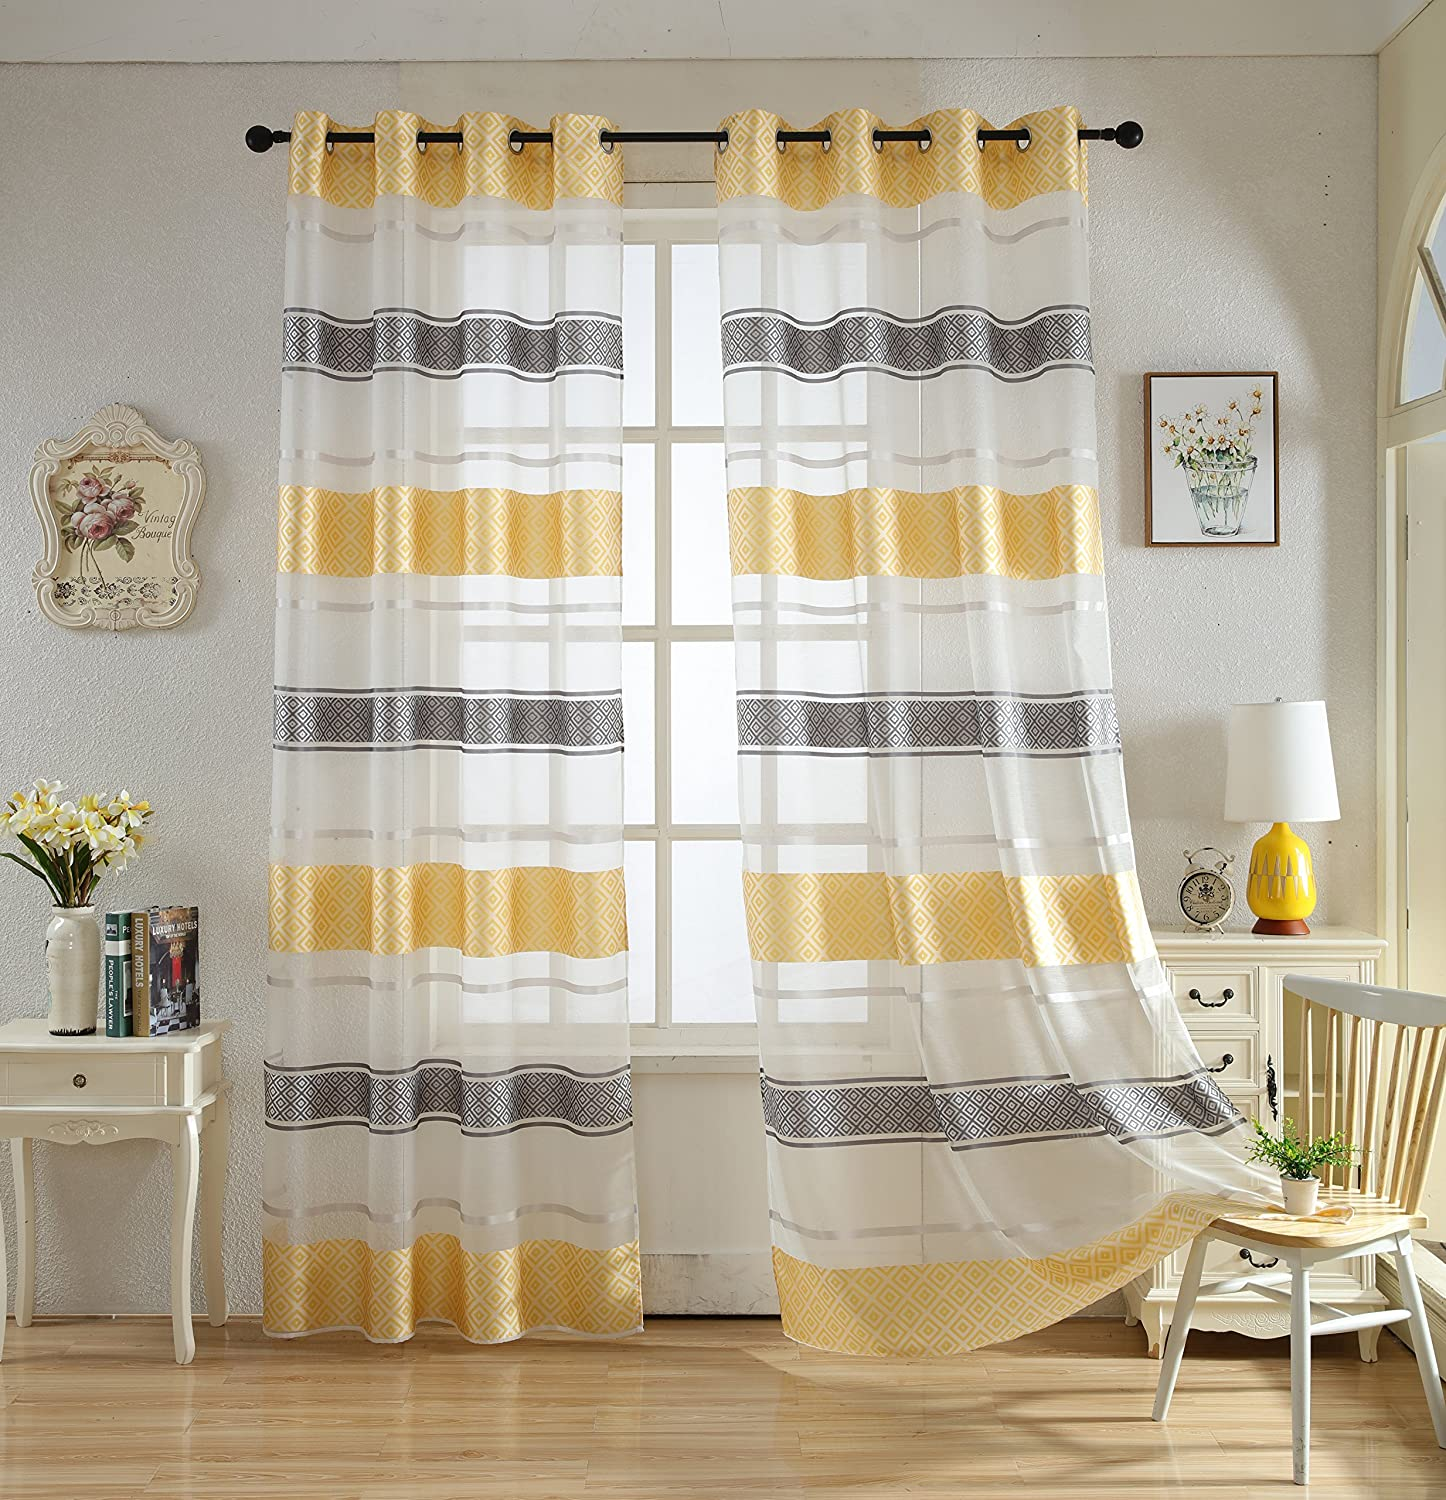 Merrylife Decorative Stylish Sheer Curtains with Grommets Yellow